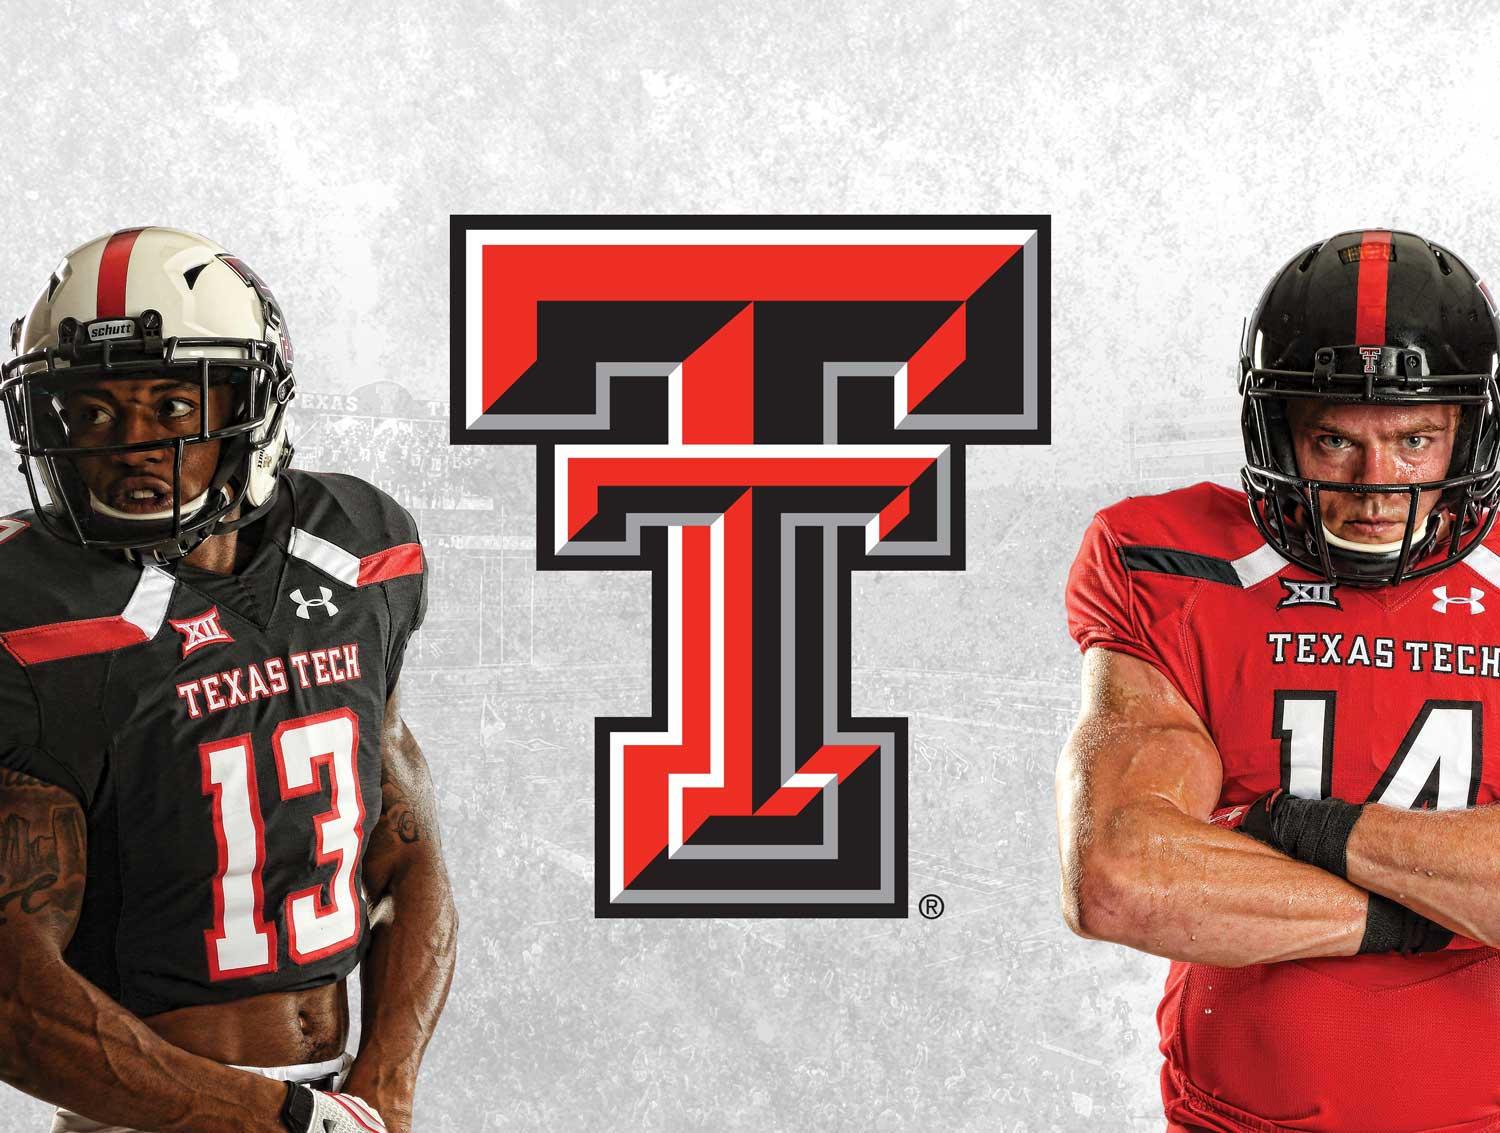 Photo of the Texas Tech logo and players